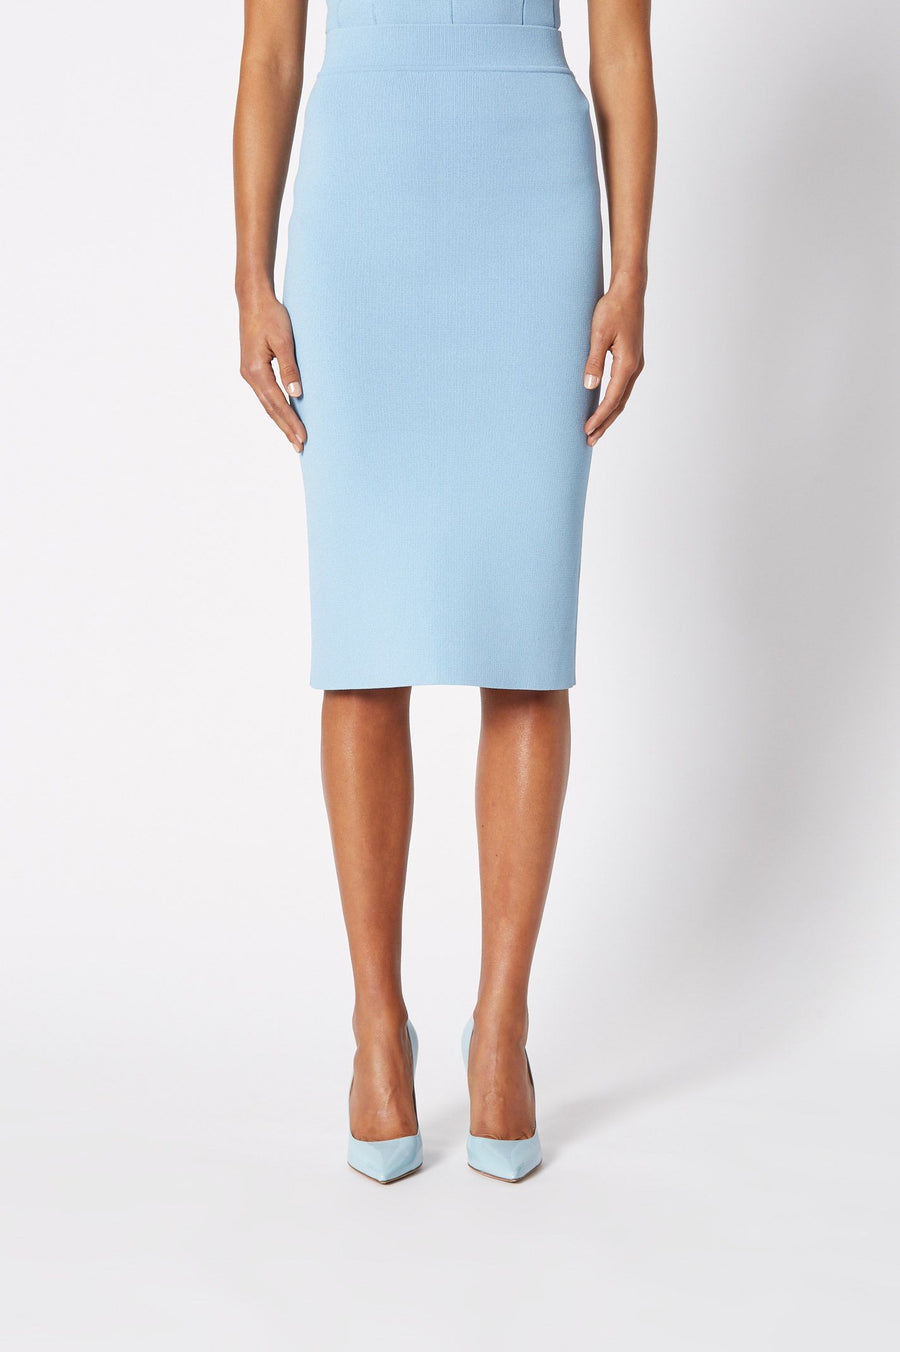 CREPE KNIT SLIT BACK SKIRT PALE BLUE, Slit back, Mid- stretch